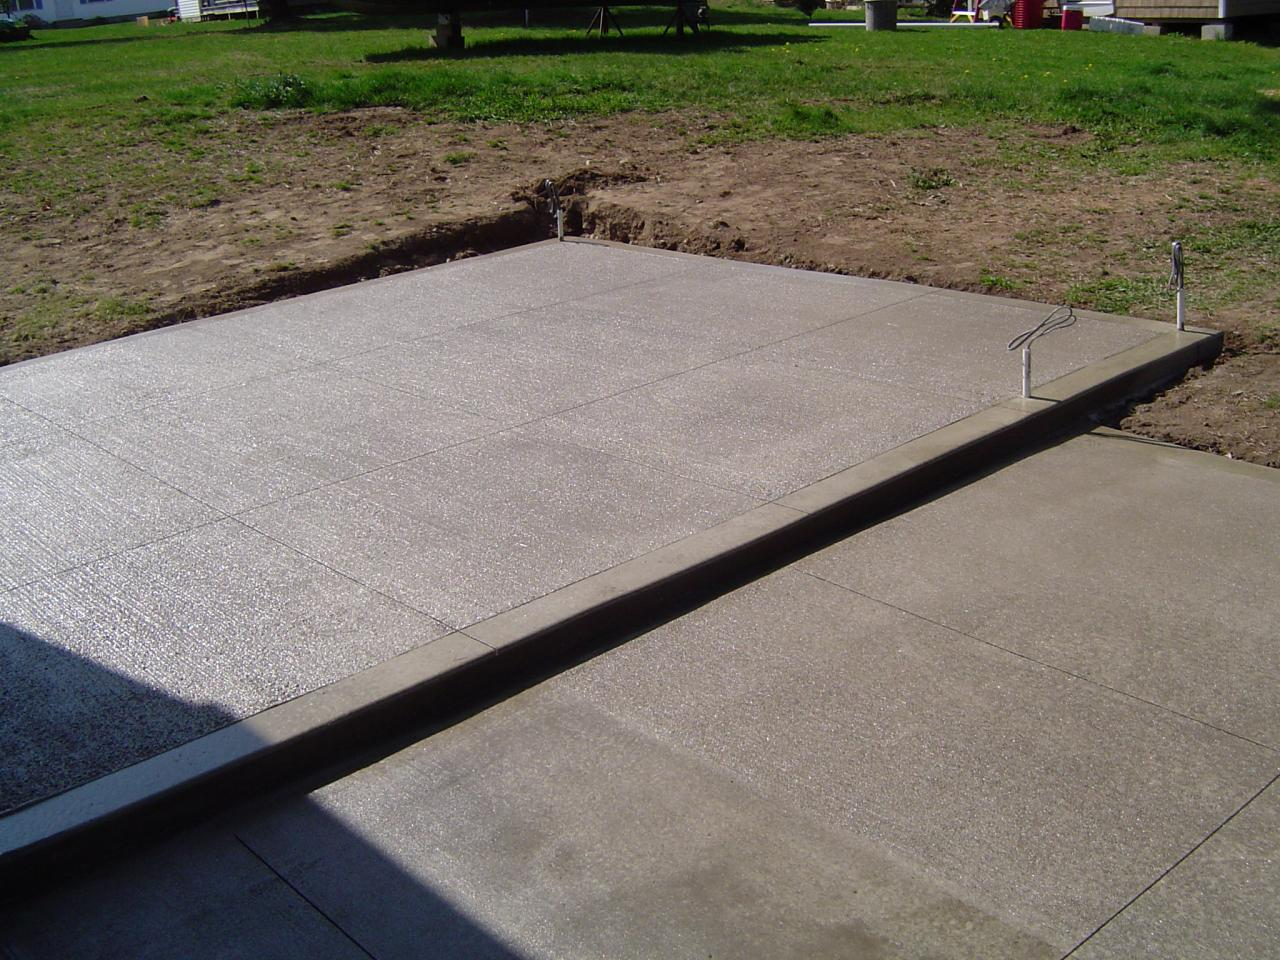 Concrete Used For Patios Can Be Shaped, Molded, Stamped, And Colored.  Finishes Range From Smooth, Brushed, Swirled. The Possibilities Are Endless  And ...